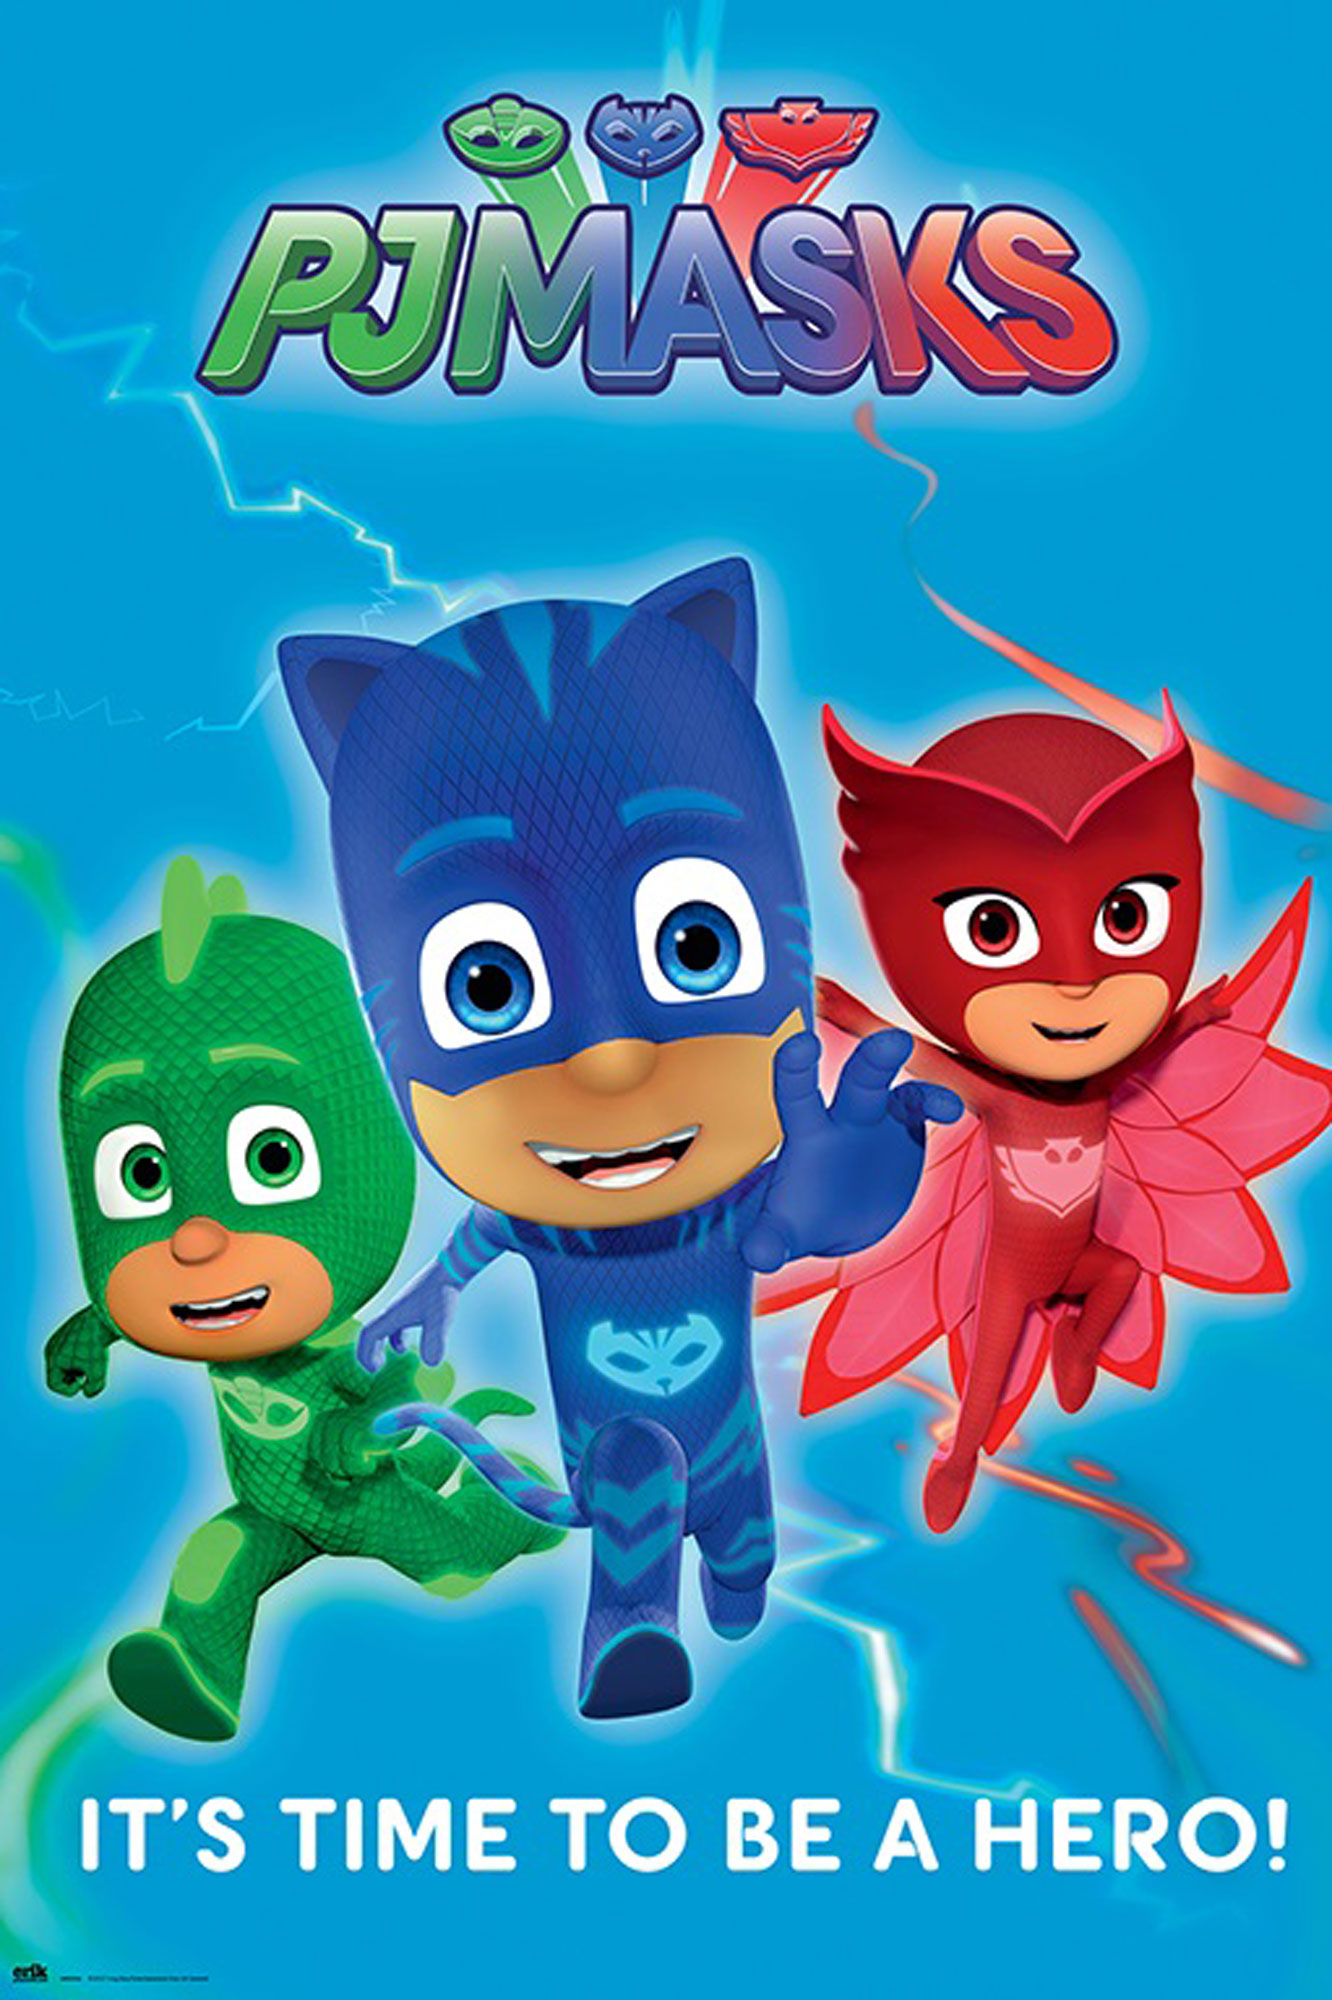 PJ Masks - Poster - Time to be a hero